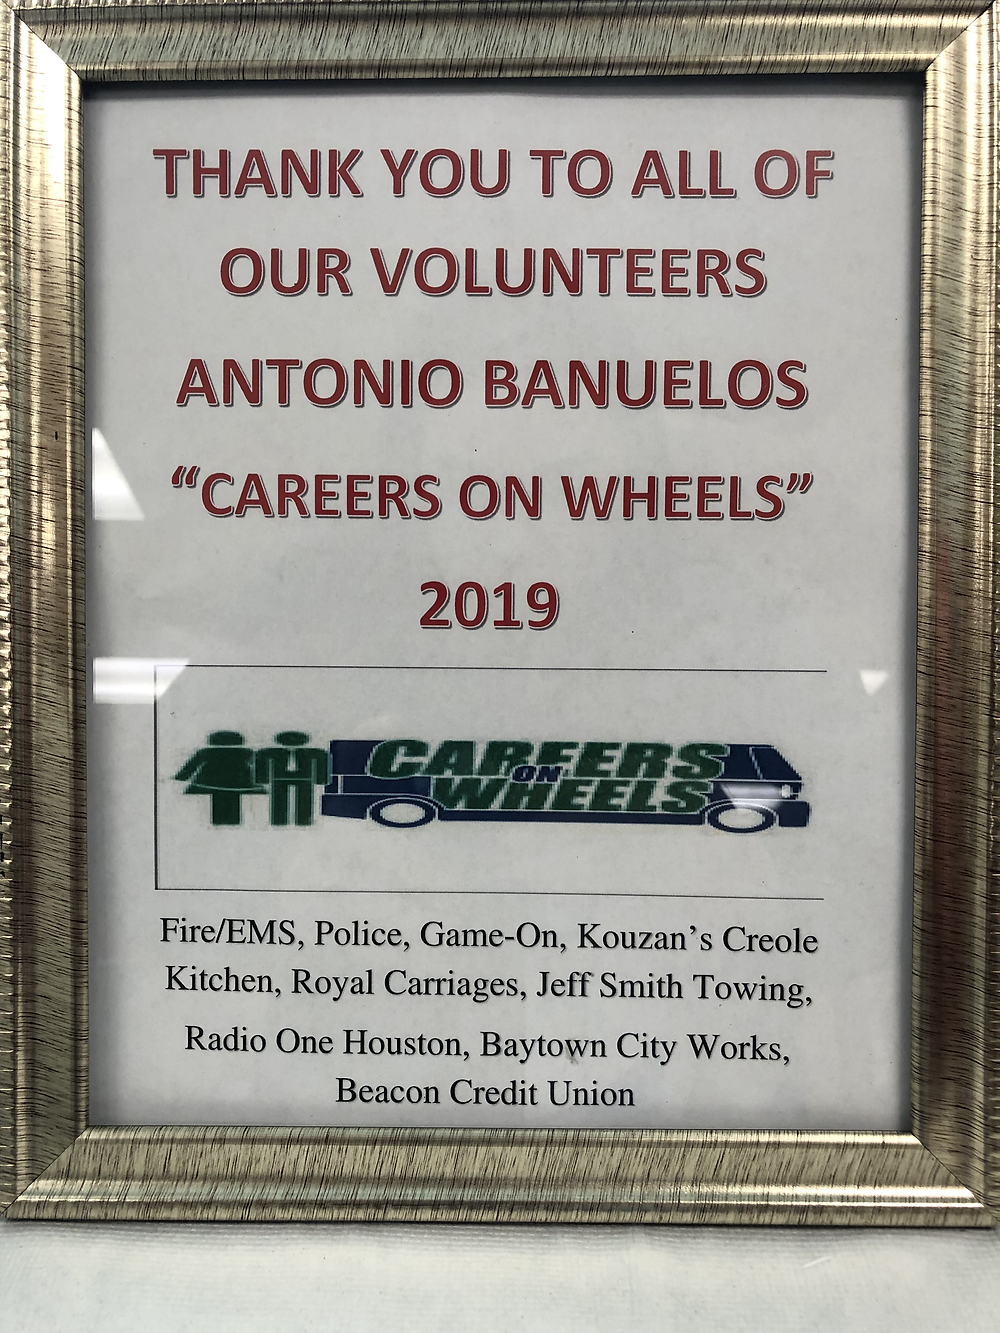 Thank You Plaque from Dr. Antonio Banuelos Elementary for attending Careers on Wheels.